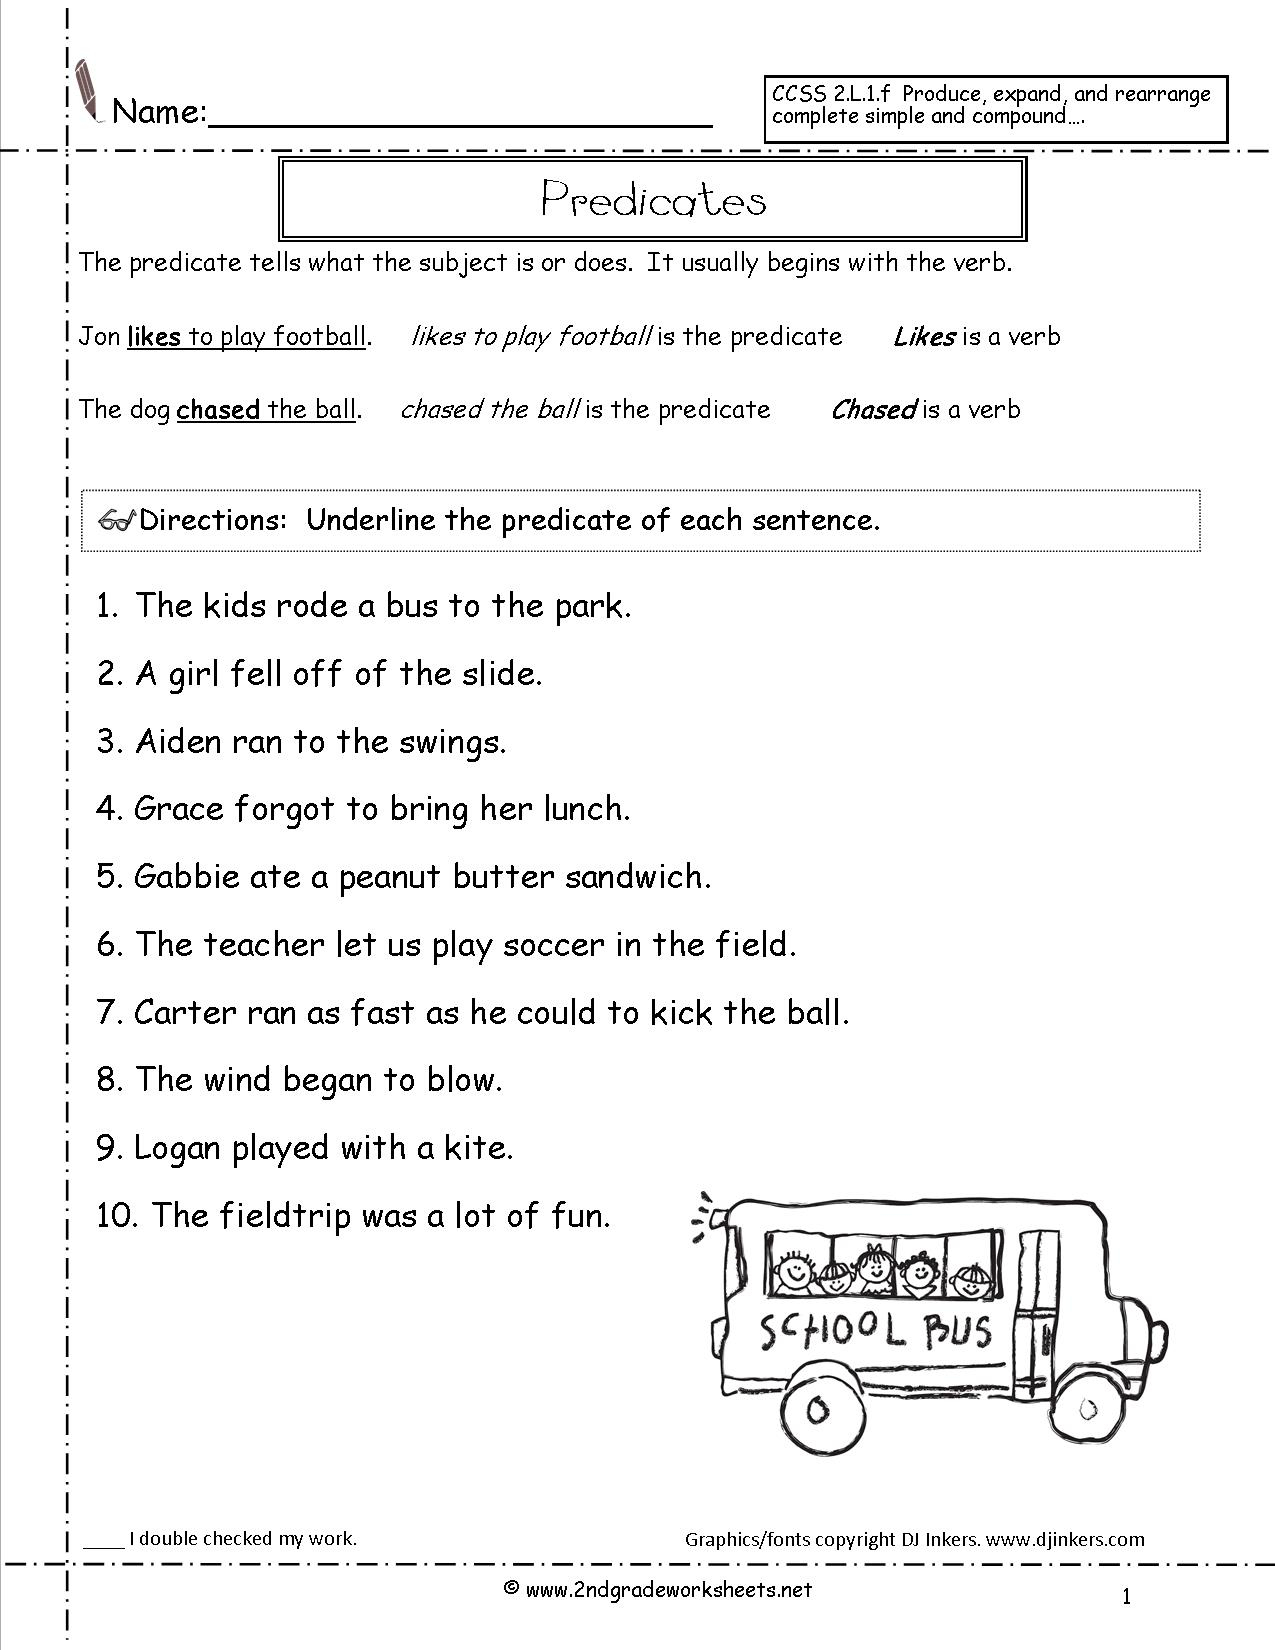 Second Grade Sentences Worksheets, Ccss 2.l.1.f Worksheets. - Free Printable Subject Predicate Worksheets 2Nd Grade